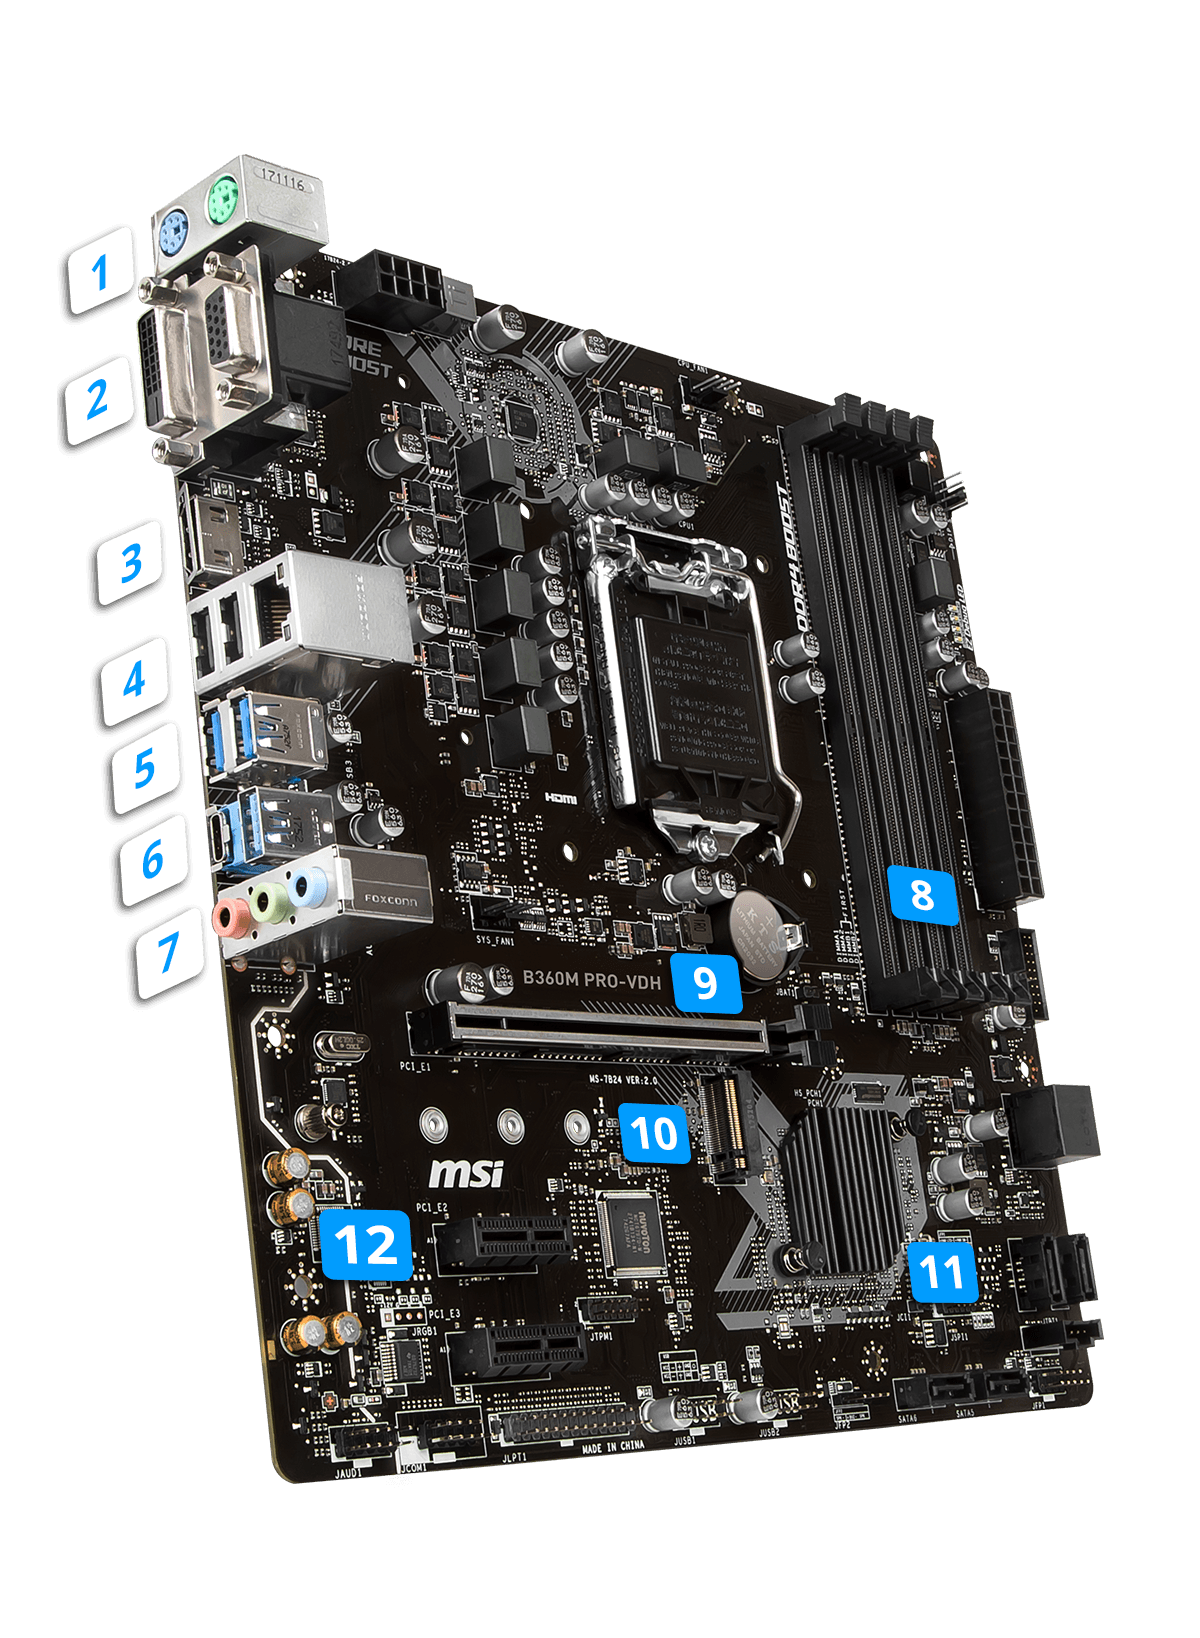 B360M PRO-VDH | Motherboard - The world leader in